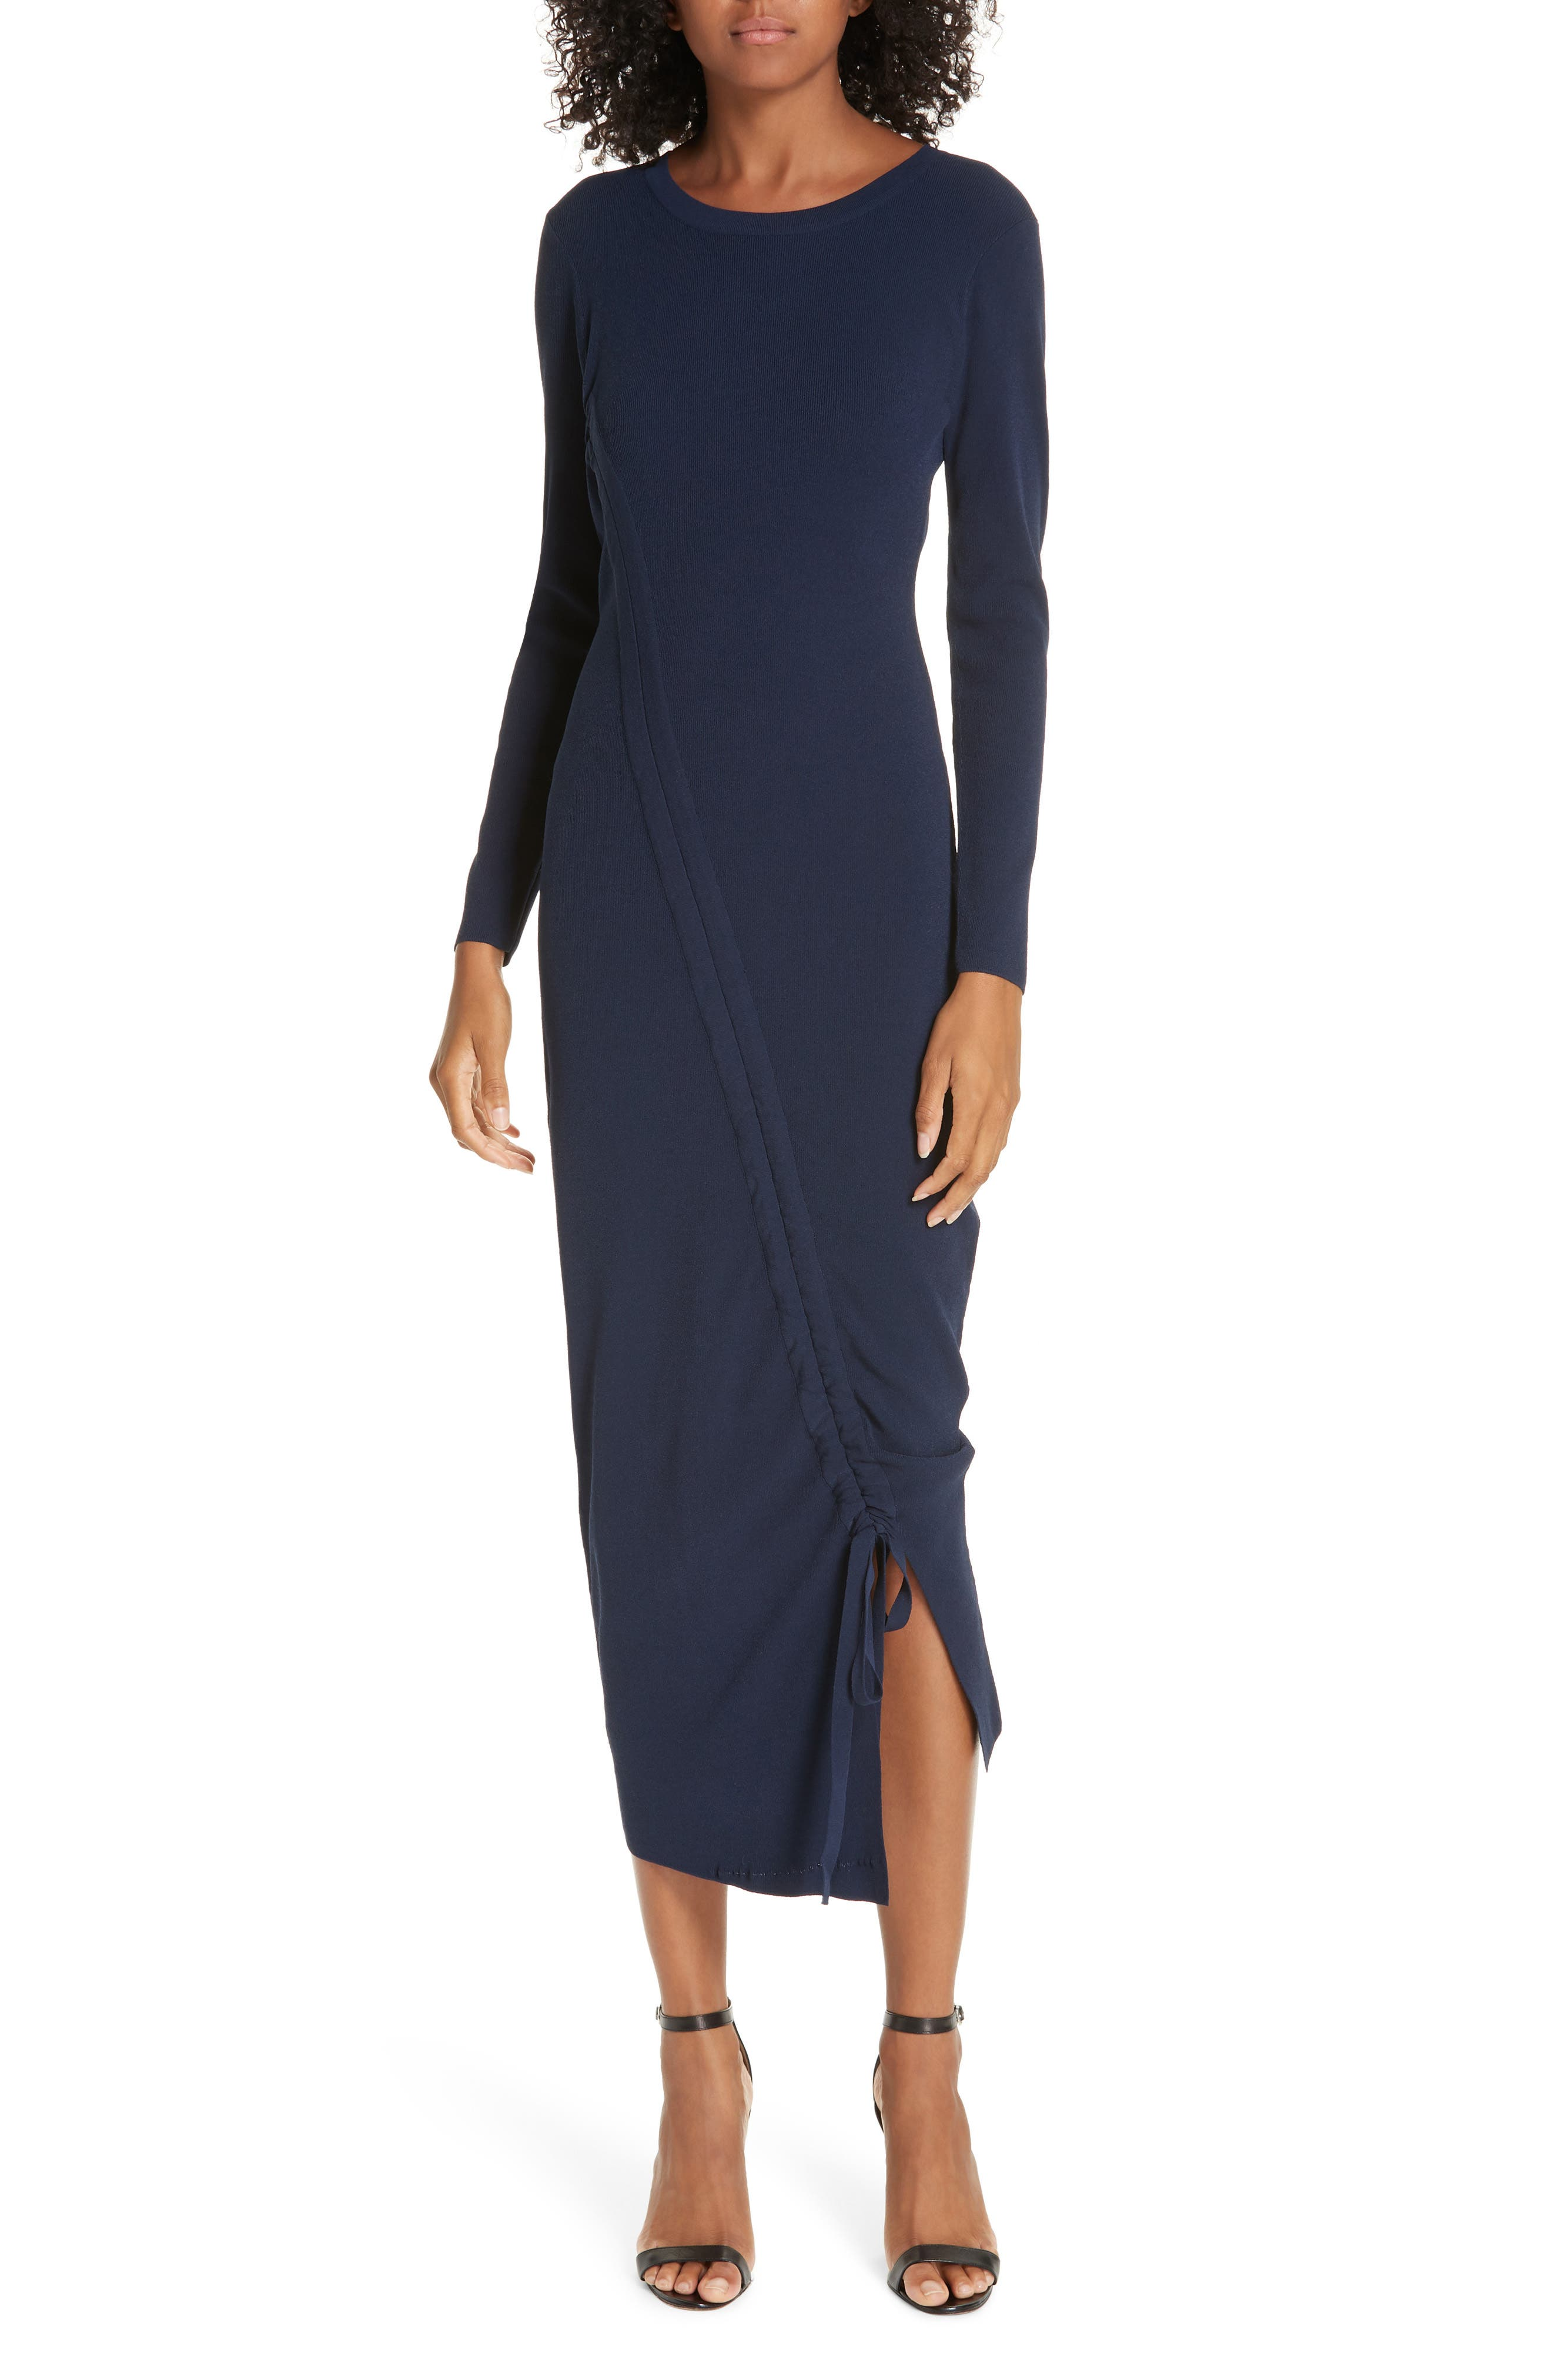 Milly Diagonal Ruched Tunnel Dress, Size Petite - Blue